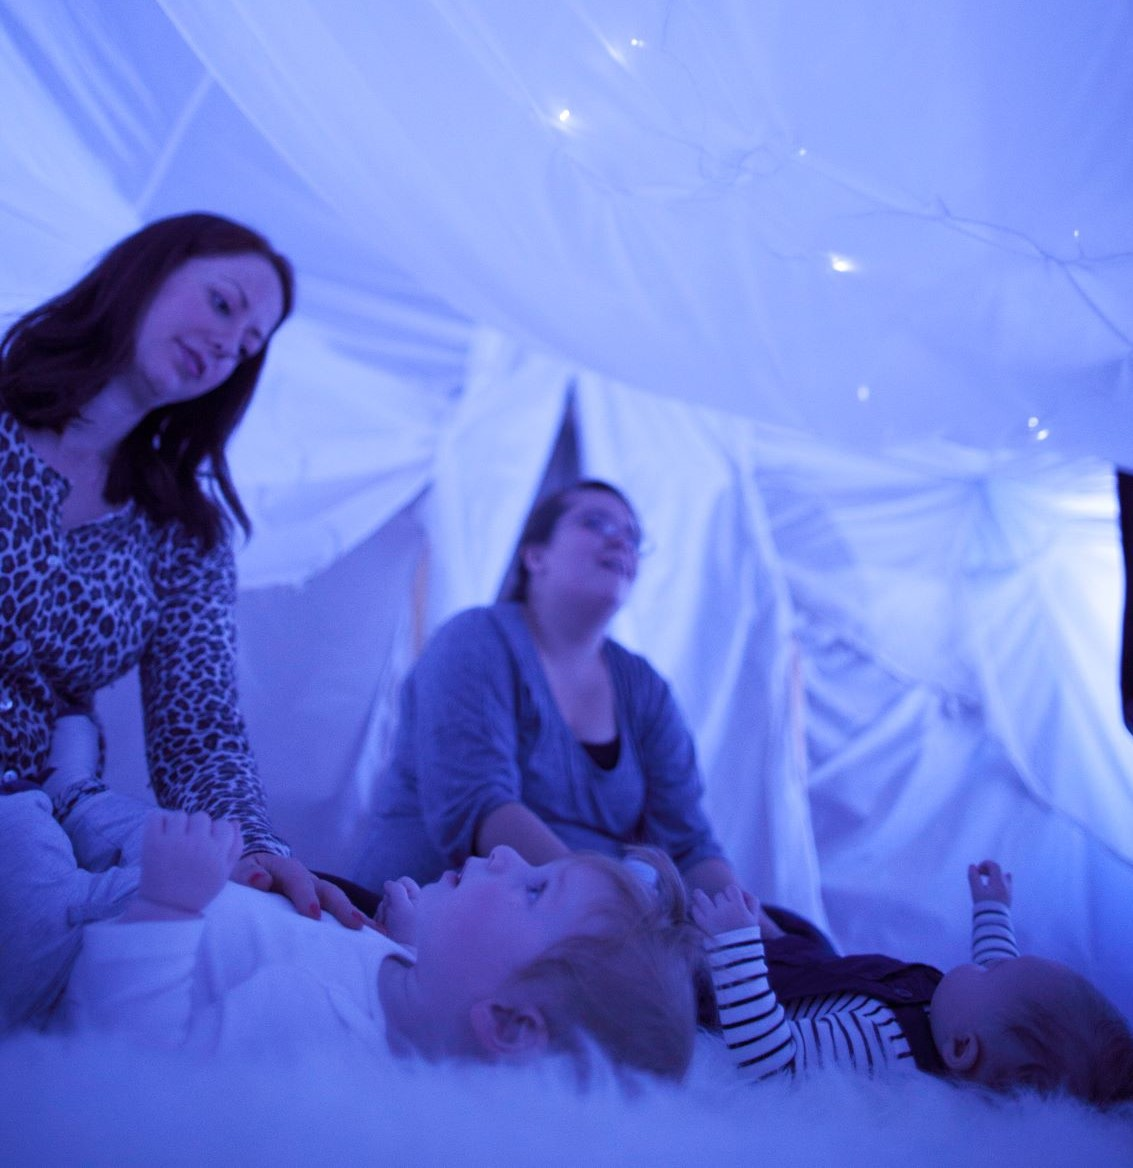 For all parents looking for a memorable experience with your pre-walking baby…. Come along to Nest! A truly remarkable experience in a custom-built performance tent! Don't miss this unique opportunity at @AttenboroughAC during #Spark2020 !  Book Here: https://t.co/u9Q1E0zDm9